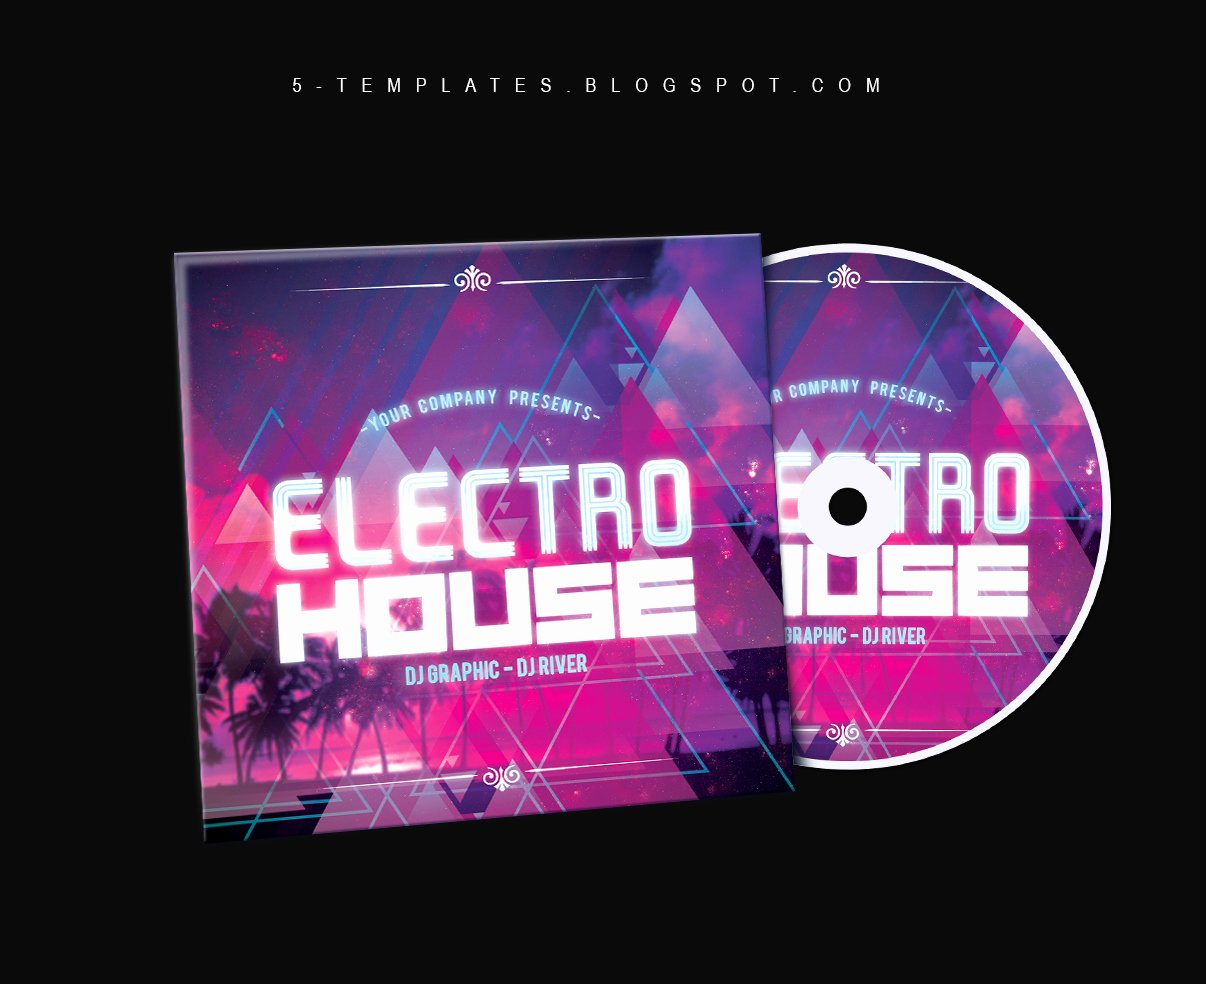 Cd Cover Template Photoshop Lovely Electro House Cd Cover Free Psd Template by Klarensm On